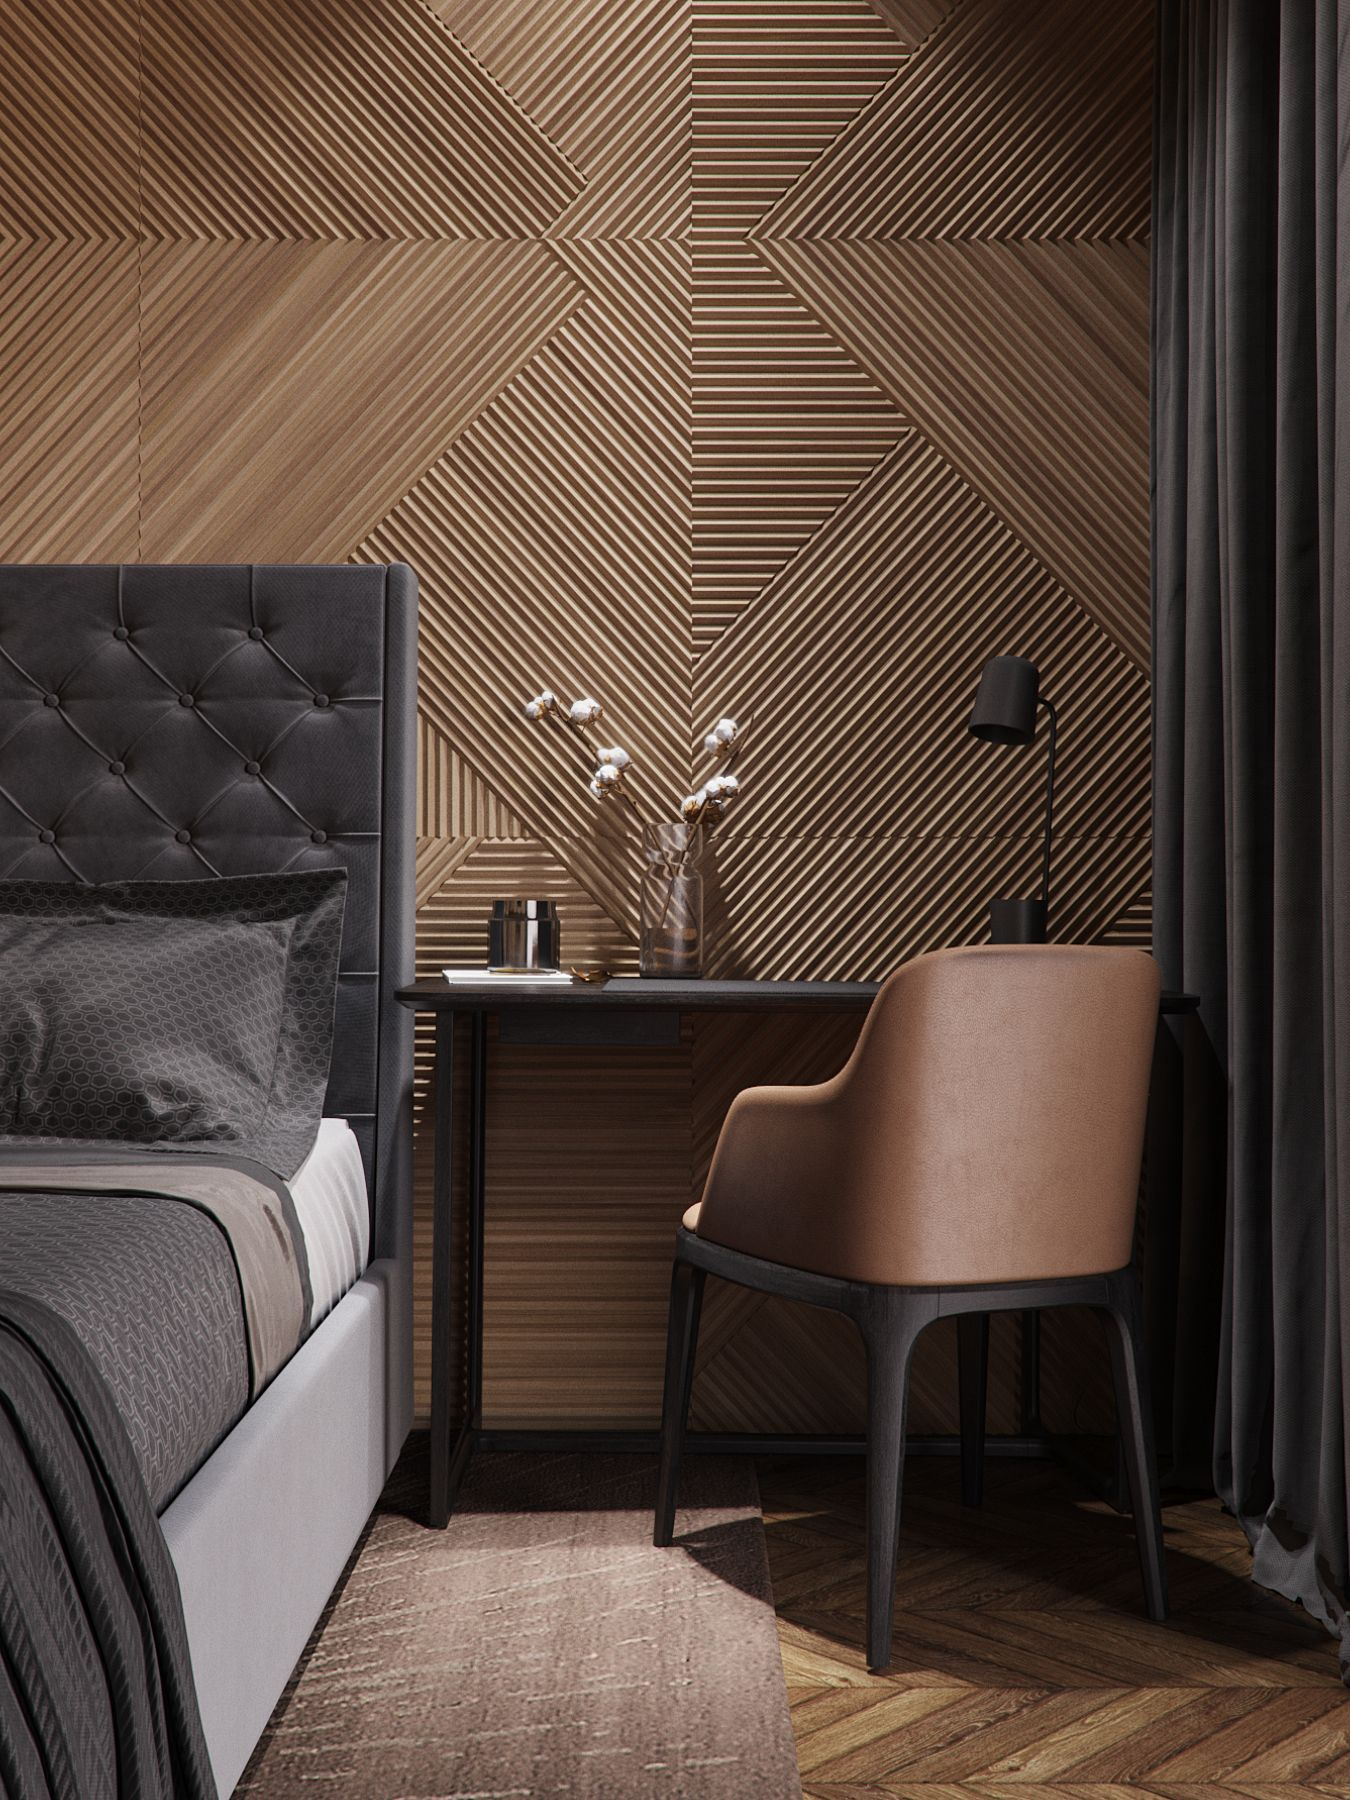 Meet The Light How Gold Fits Into Every Home Http Contemporarylighting Eu Contemporary Lighting Cont Hotel Room Design Bedroom Interior Bedroom Design #wall #texture #for #living #room